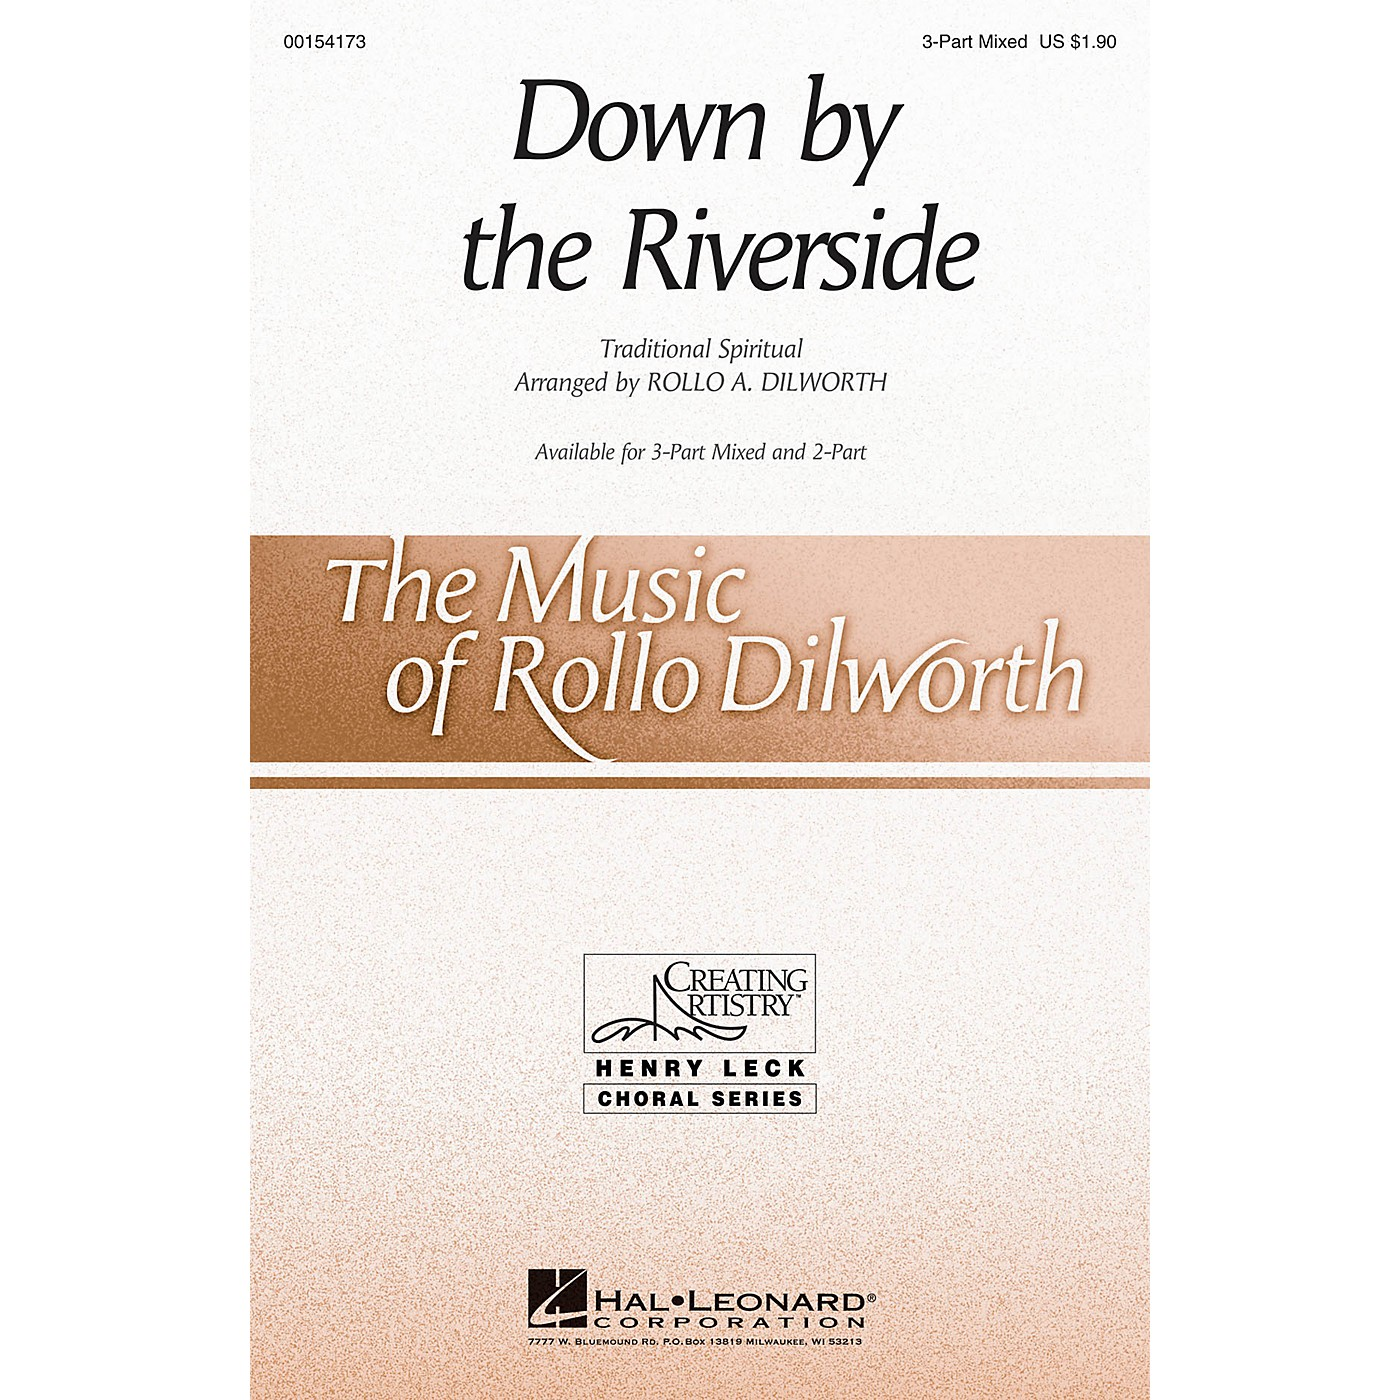 Hal Leonard Down by the Riverside 3-Part Mixed arranged by Rollo Dilworth thumbnail